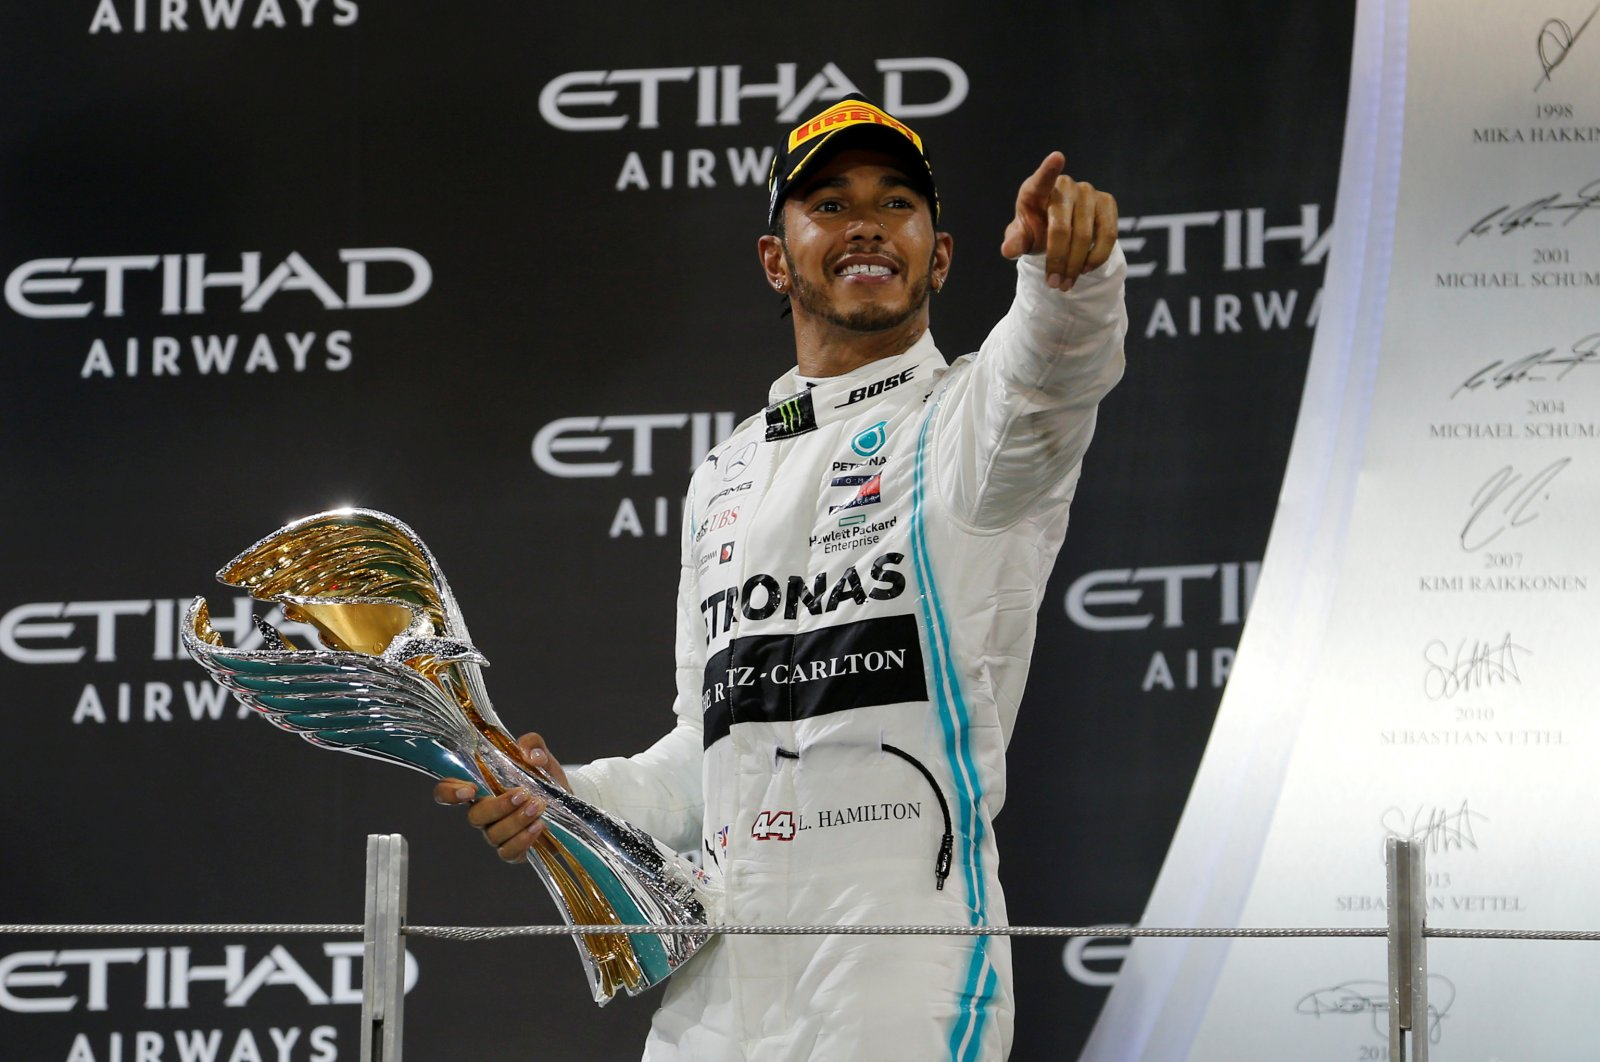 Lewis Hamilton celebrates with a trophy after winning the race, Abu Dhabi, Dec. 1, 2019. (REUTERS Photo)